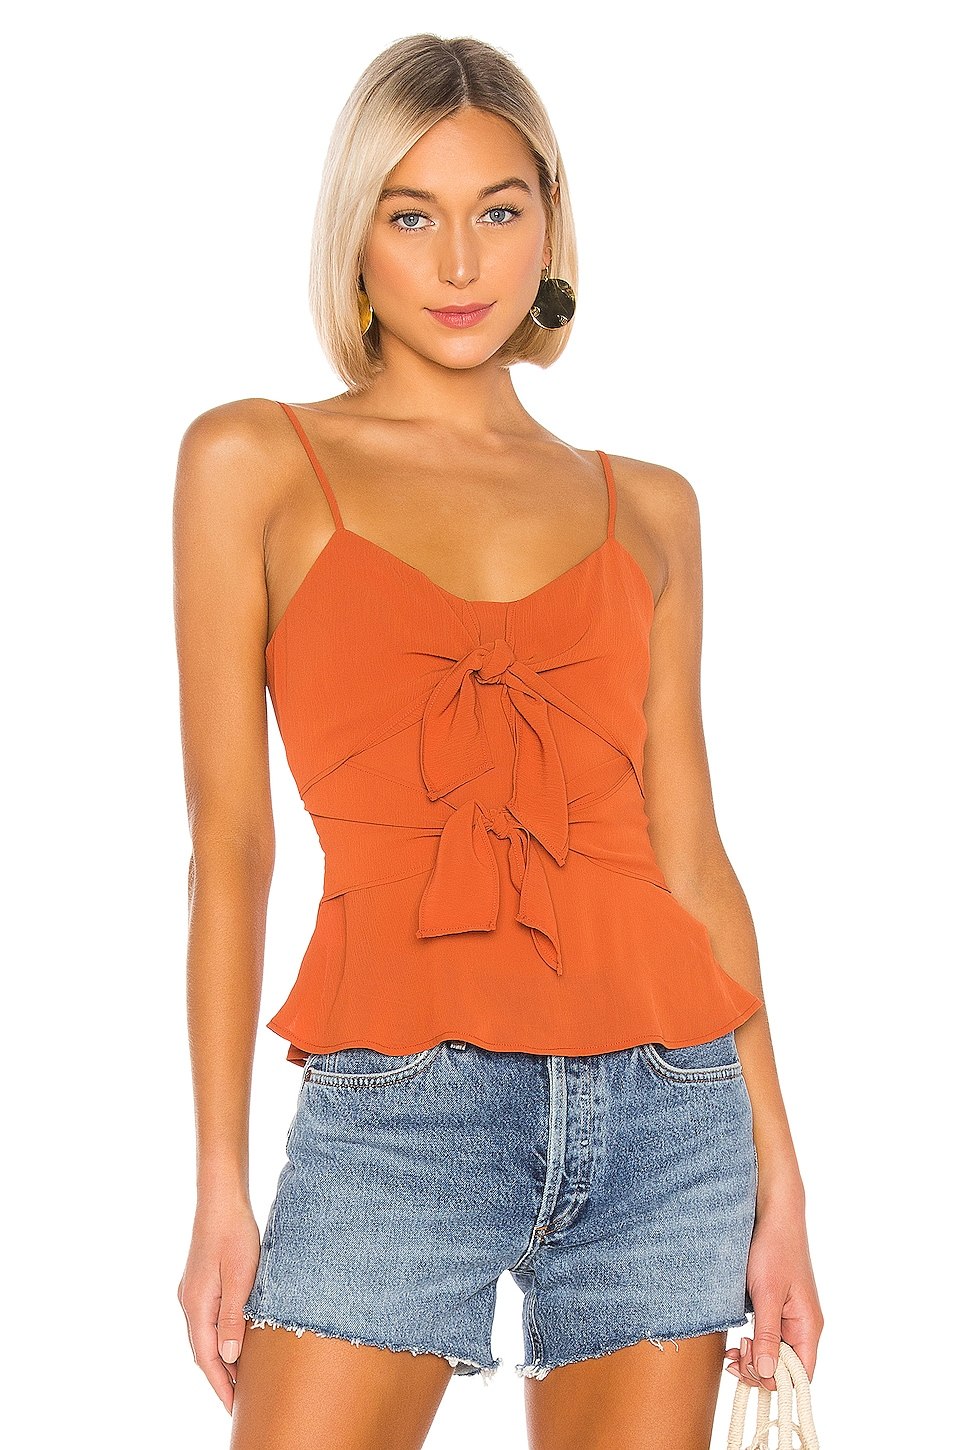 House of Harlow 1960 x REVOLVE Jana Top in Rust